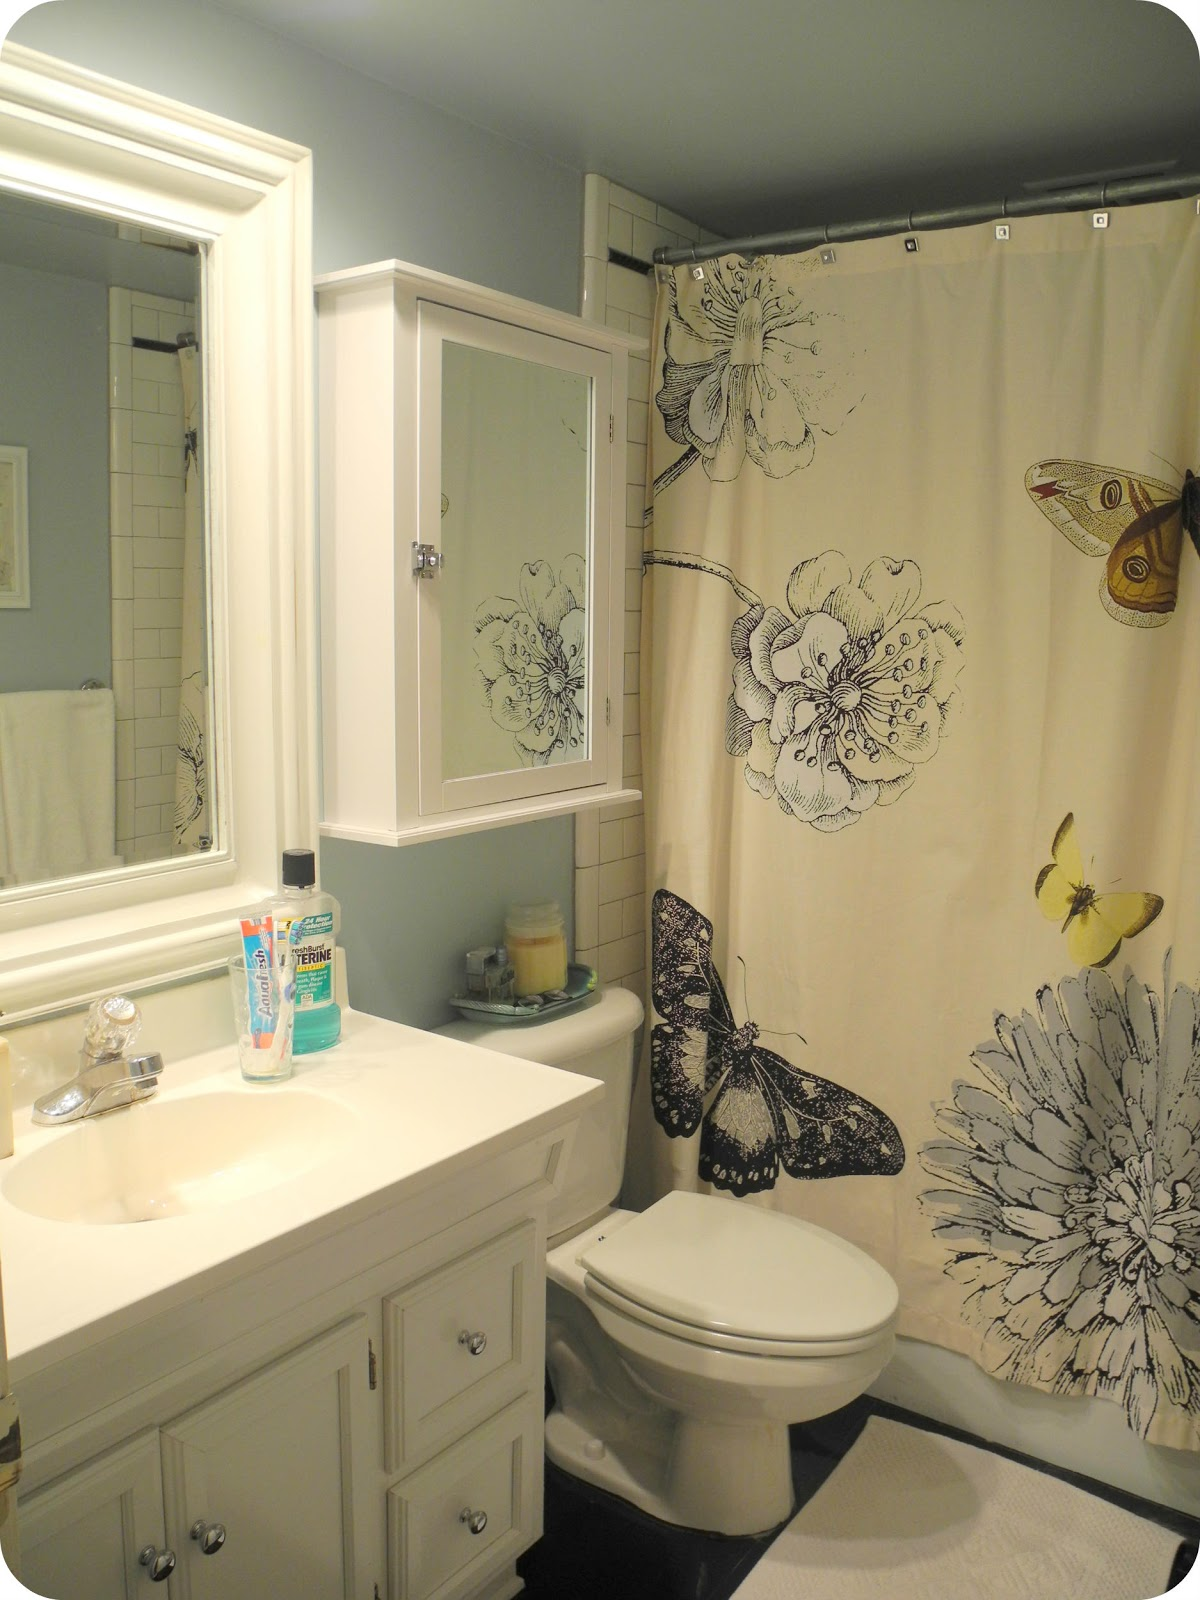 Awesome I Live Here Black White and Blue Bathroom with Butterflies And Gary Oldman